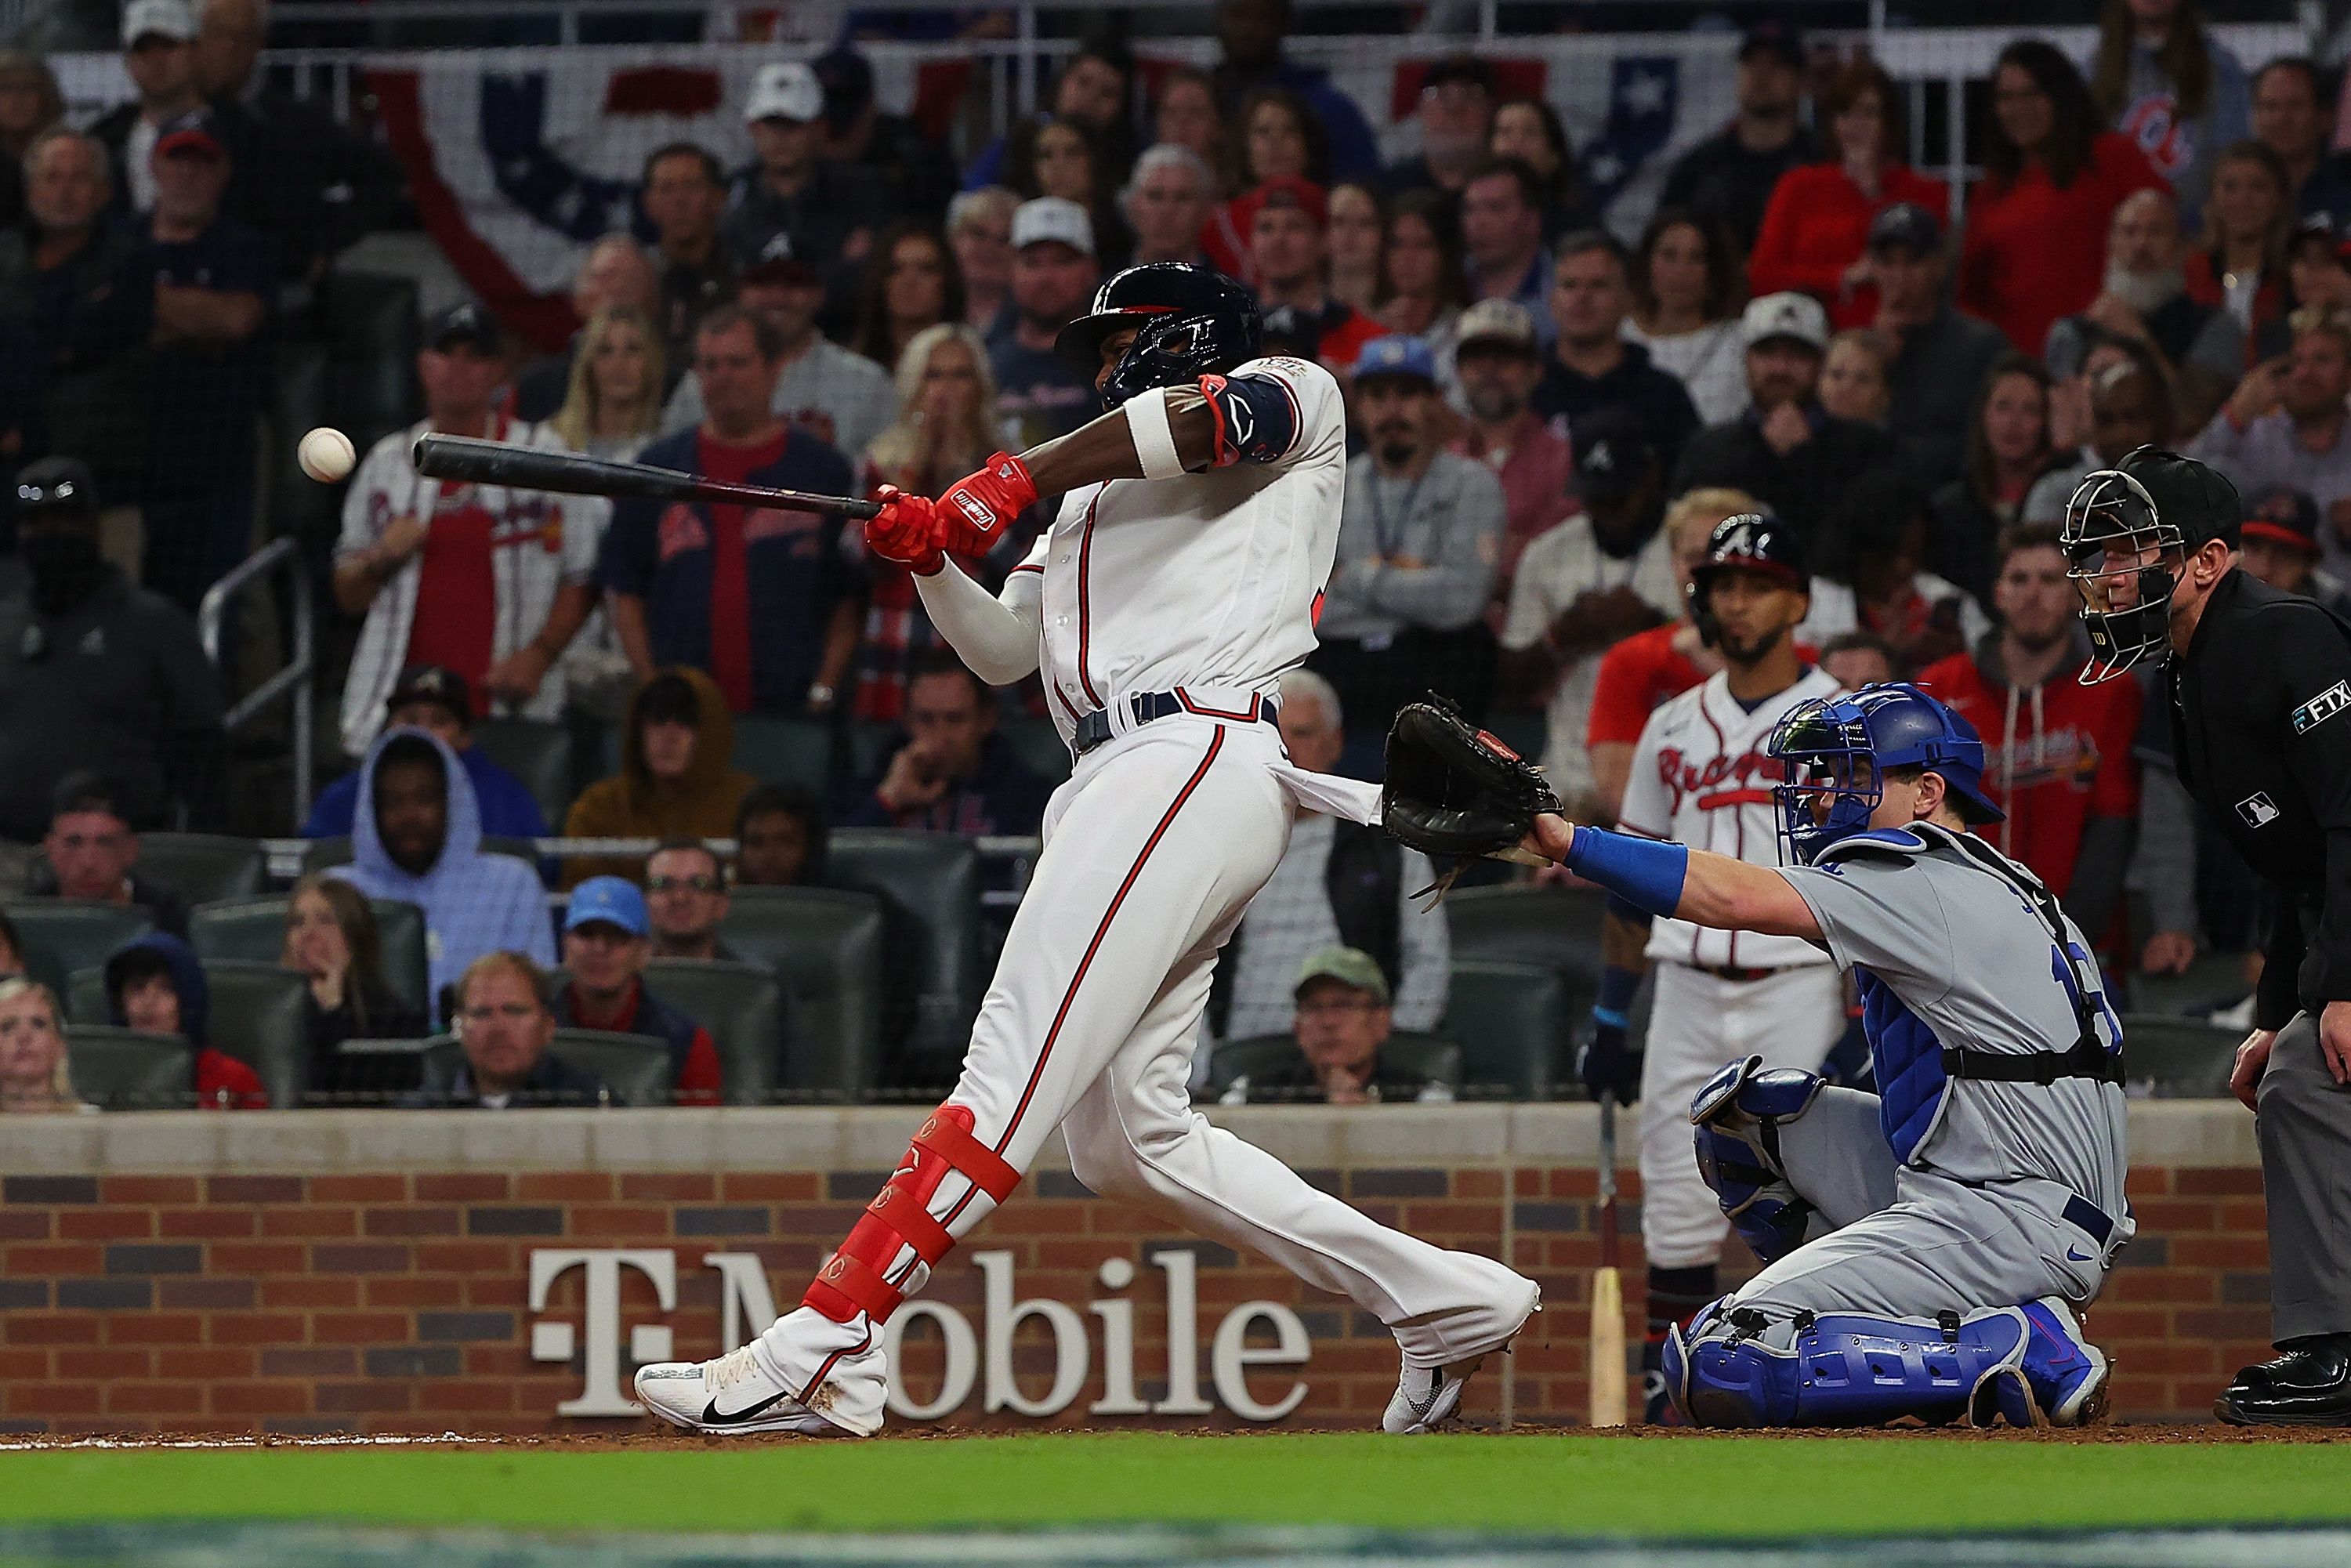 Jorge Soler #12 of the Atlanta Braves hits a double during the eighth inning of Game Six of the National League Championship Series against the Los Angeles Dodgers at Truist Park on October 23, 2021 in Atlanta, Georgia.